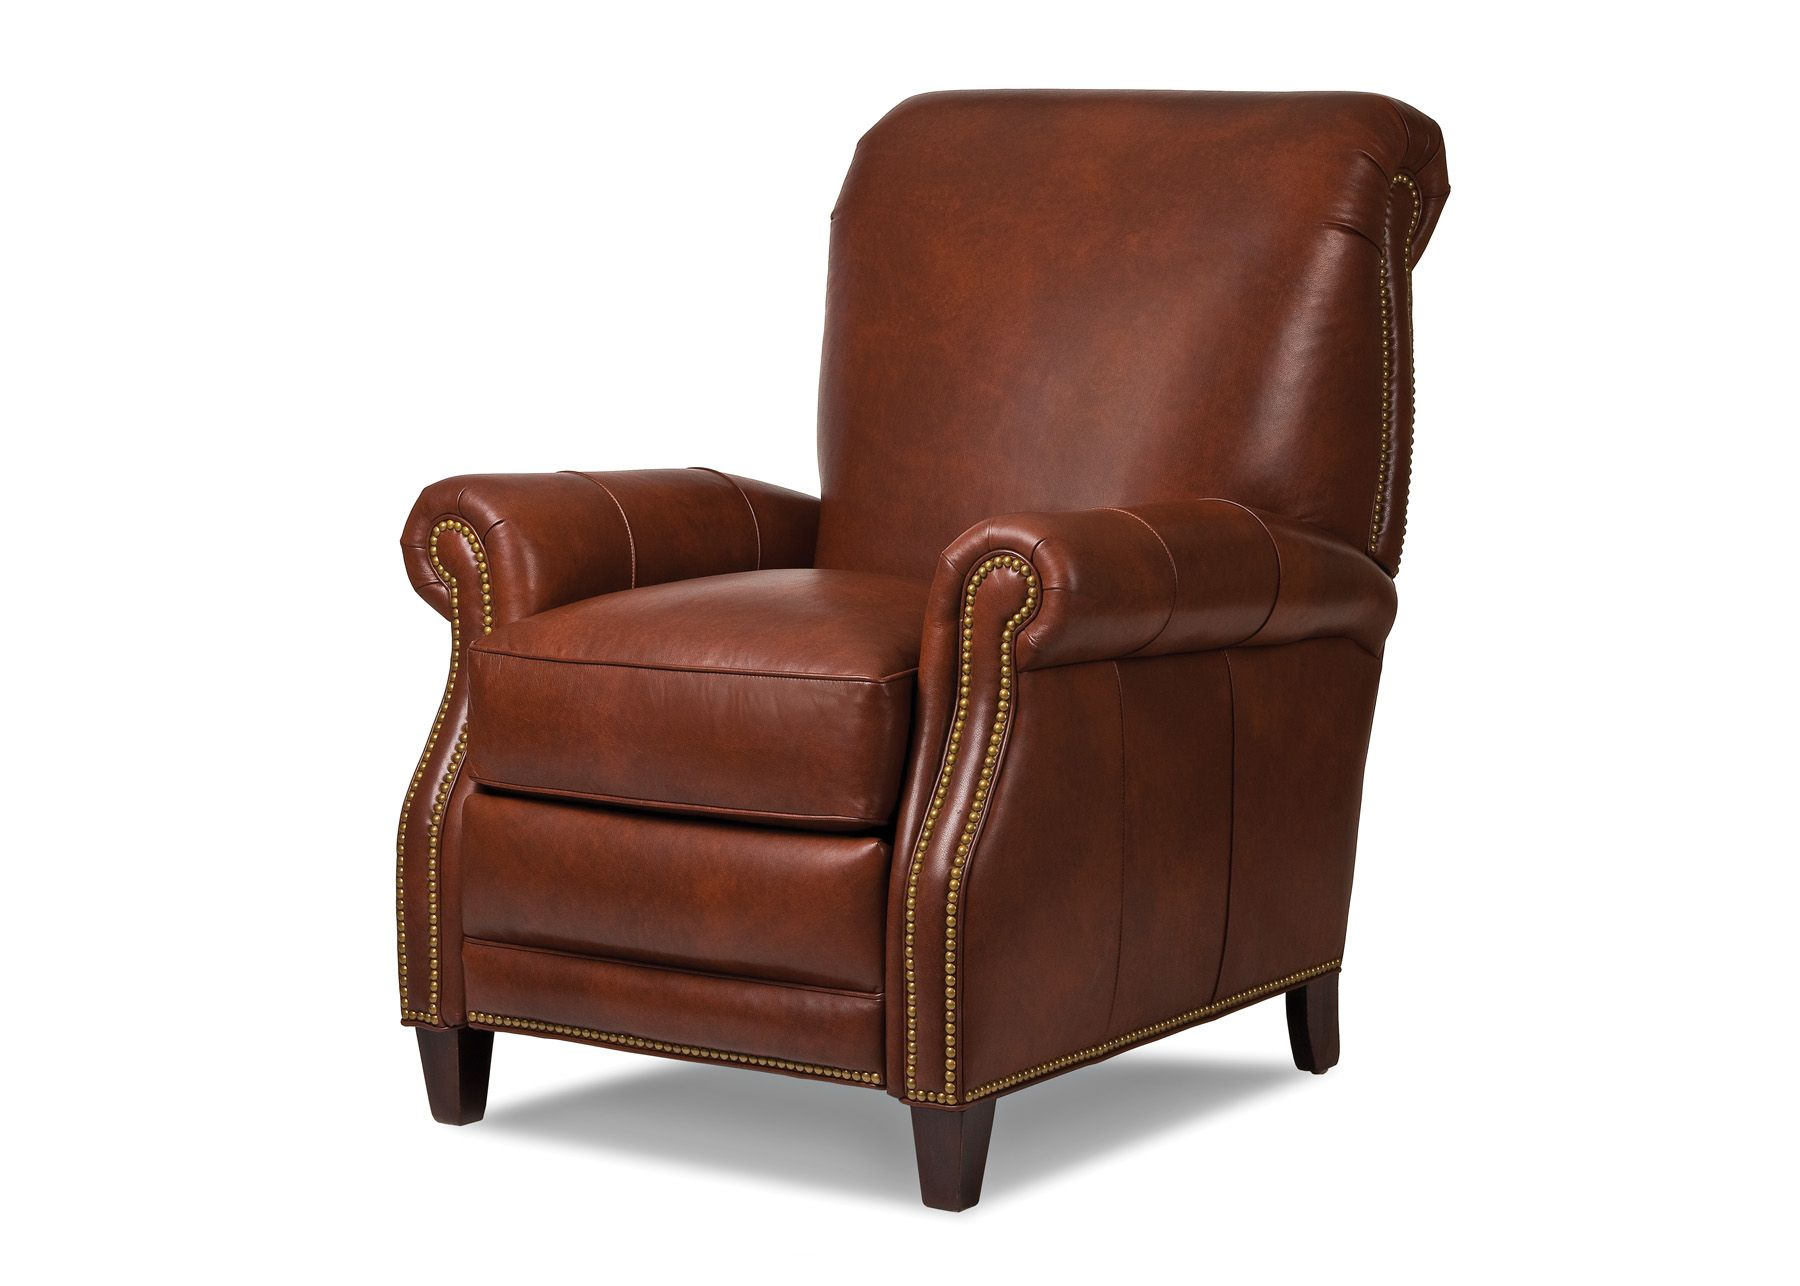 Ivanhoe Power Recliner Handcrafted Furniture By Hancock And